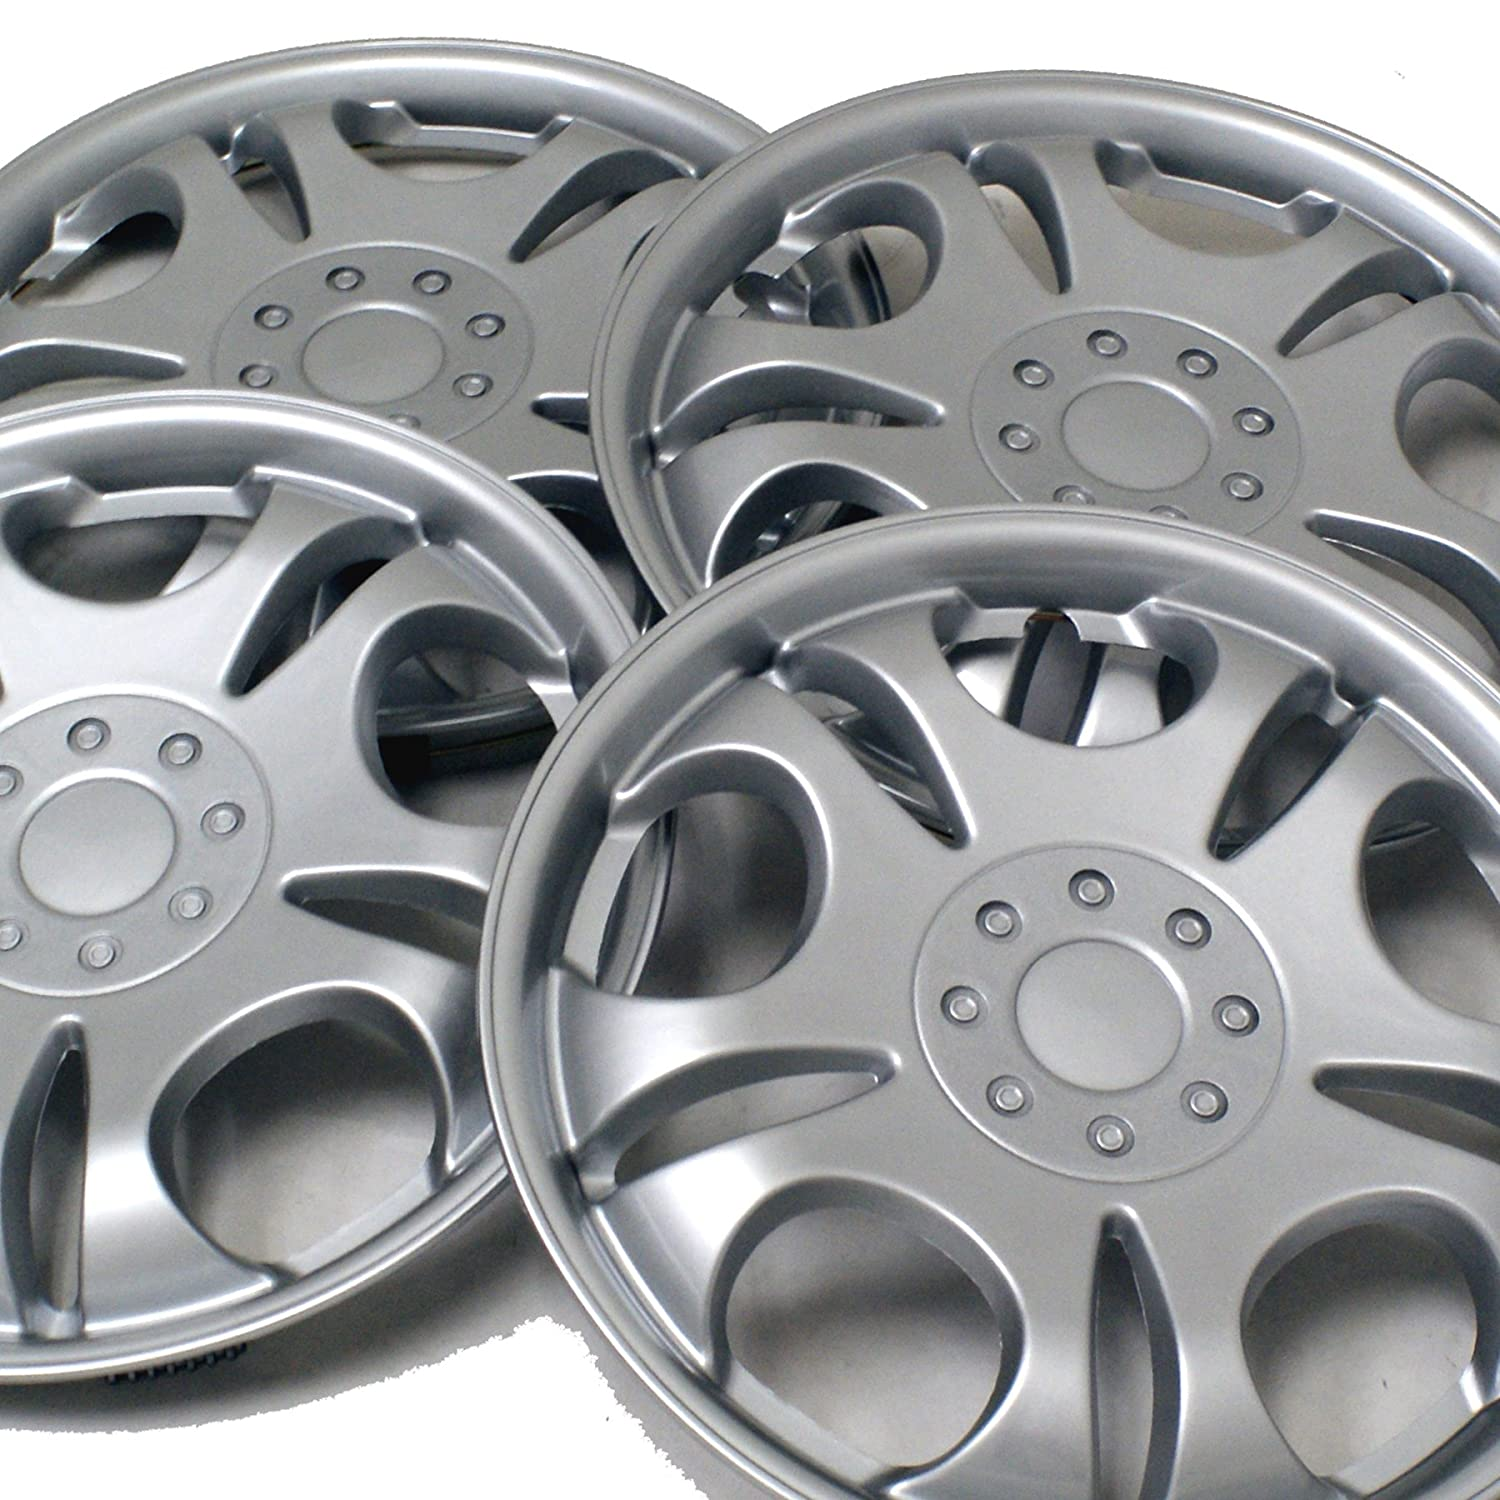 Pop-On 15-Inches Metallic Silver Hubcaps Wheel Cover TuningPros WSC3-5032S15 4pcs Set Snap-On Type